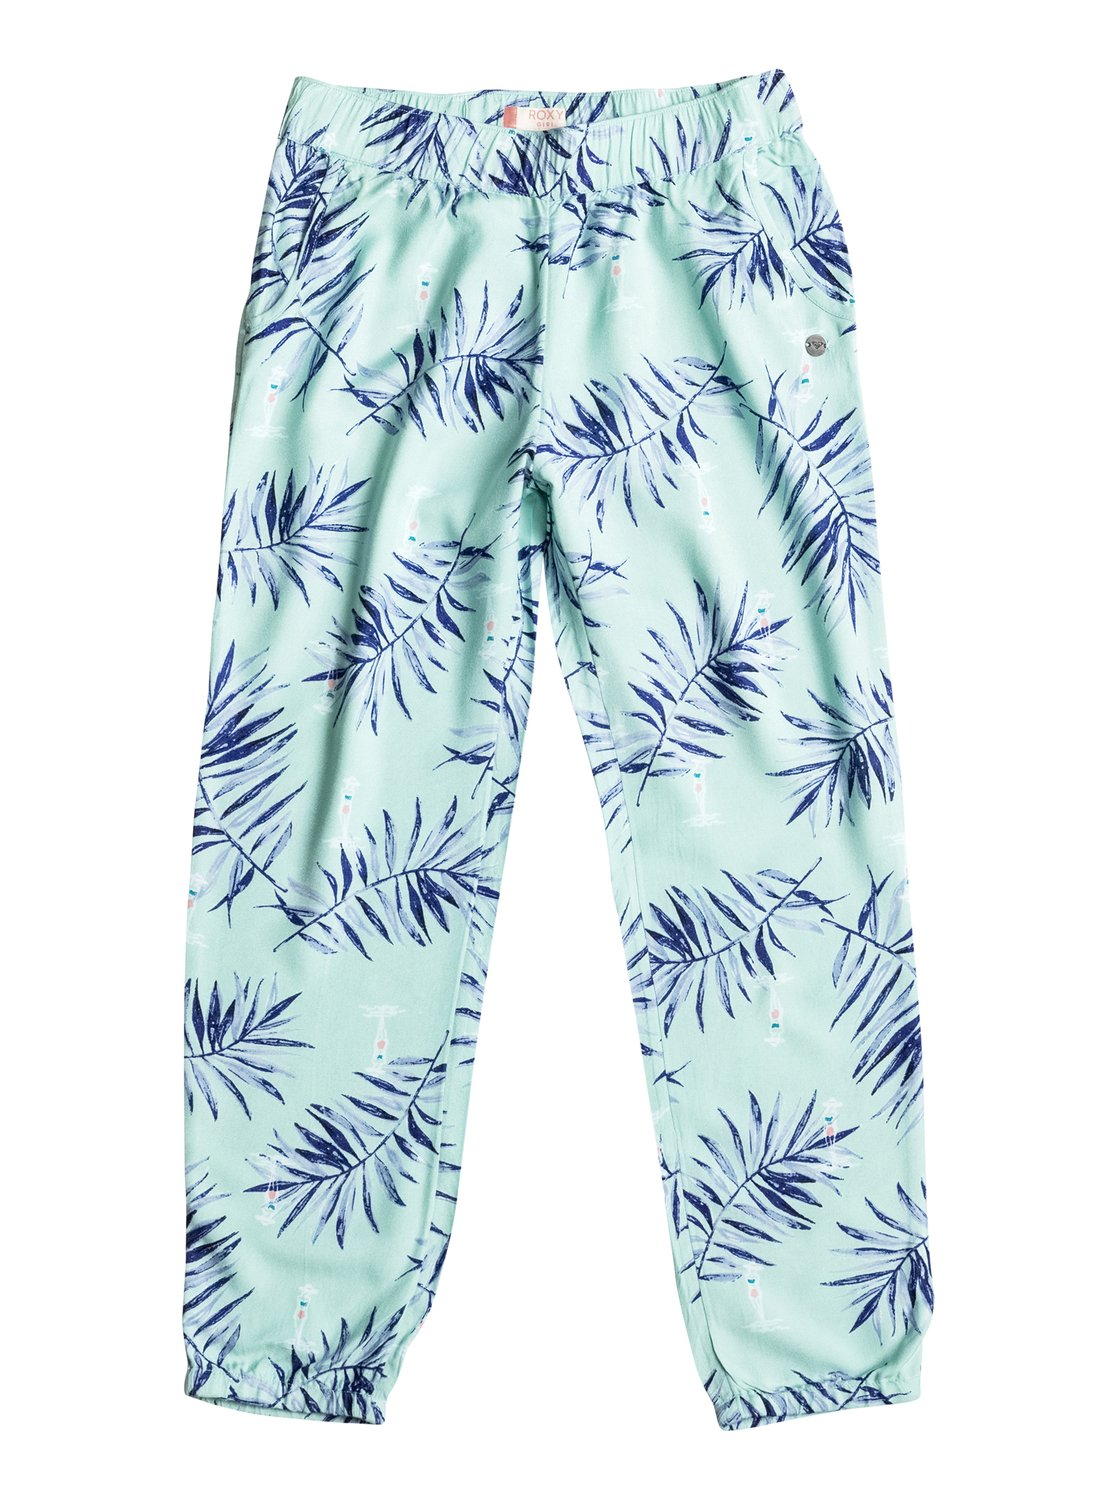 Wanna Go Holiday - Pantalon de plage pour Fille - Roxy